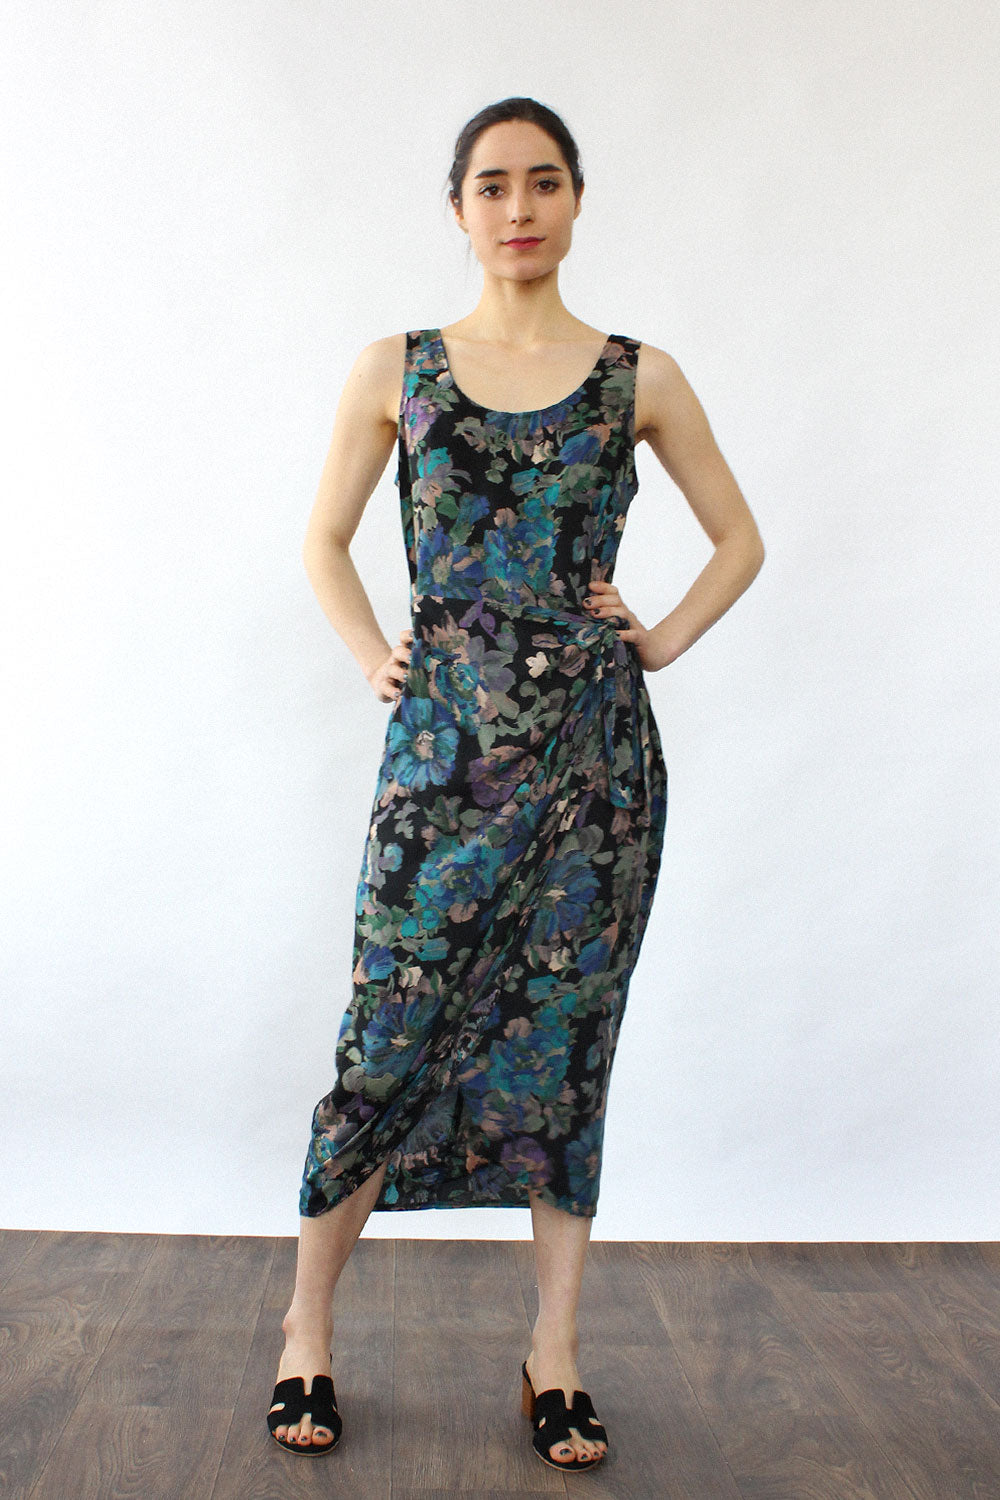 Watercolor Floral Drape Dress S/M